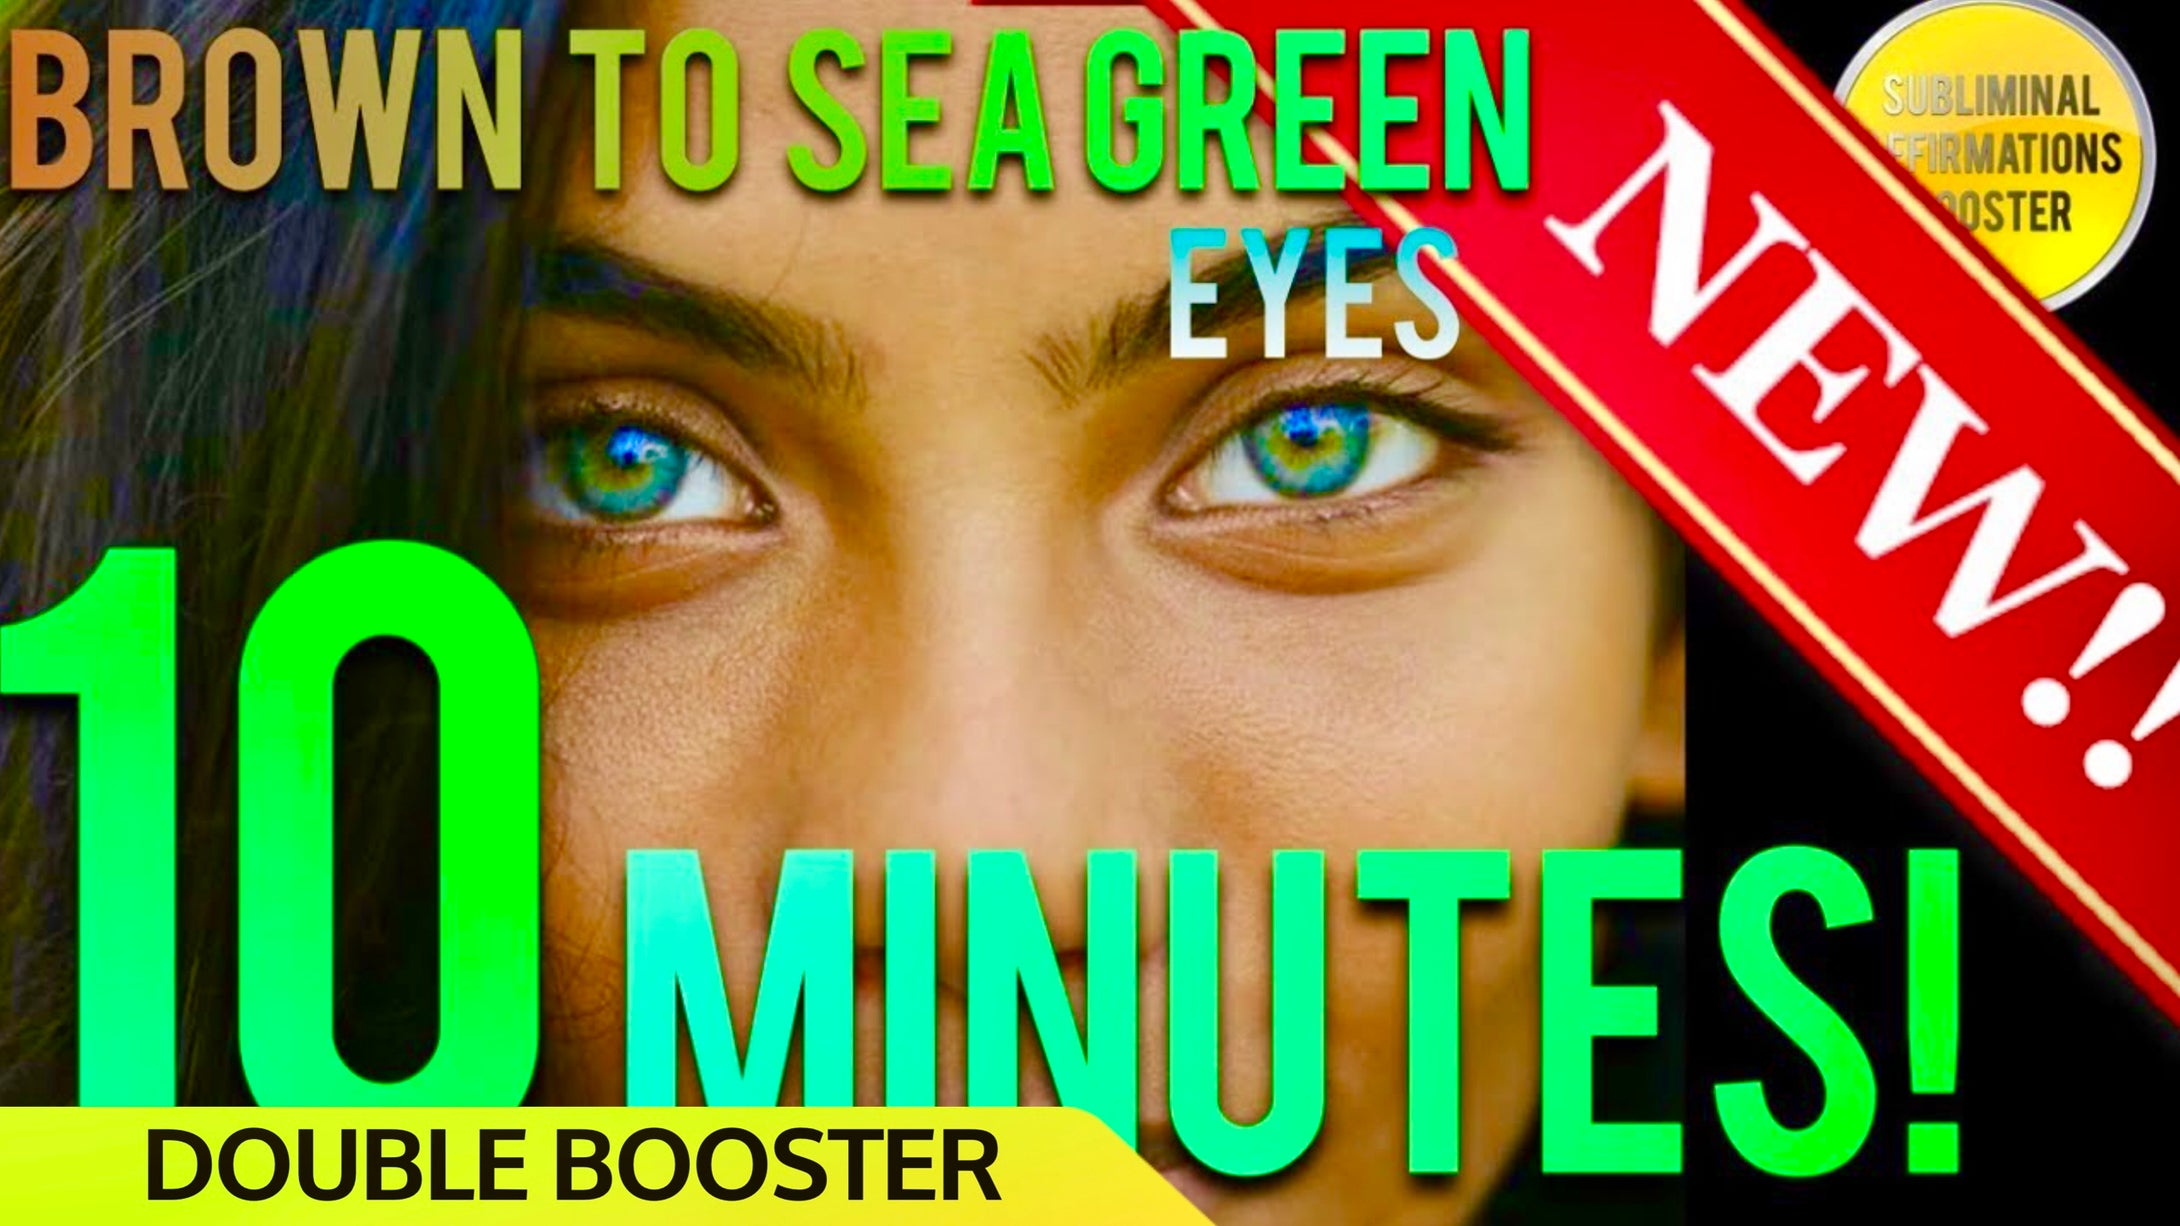 BROWN TO GOLDEN SEA GREEN EYES W/ LIMBAL RING IN 10 MINUTES! SUBLIMINAL AFFIRMATIONS BOOSTER!